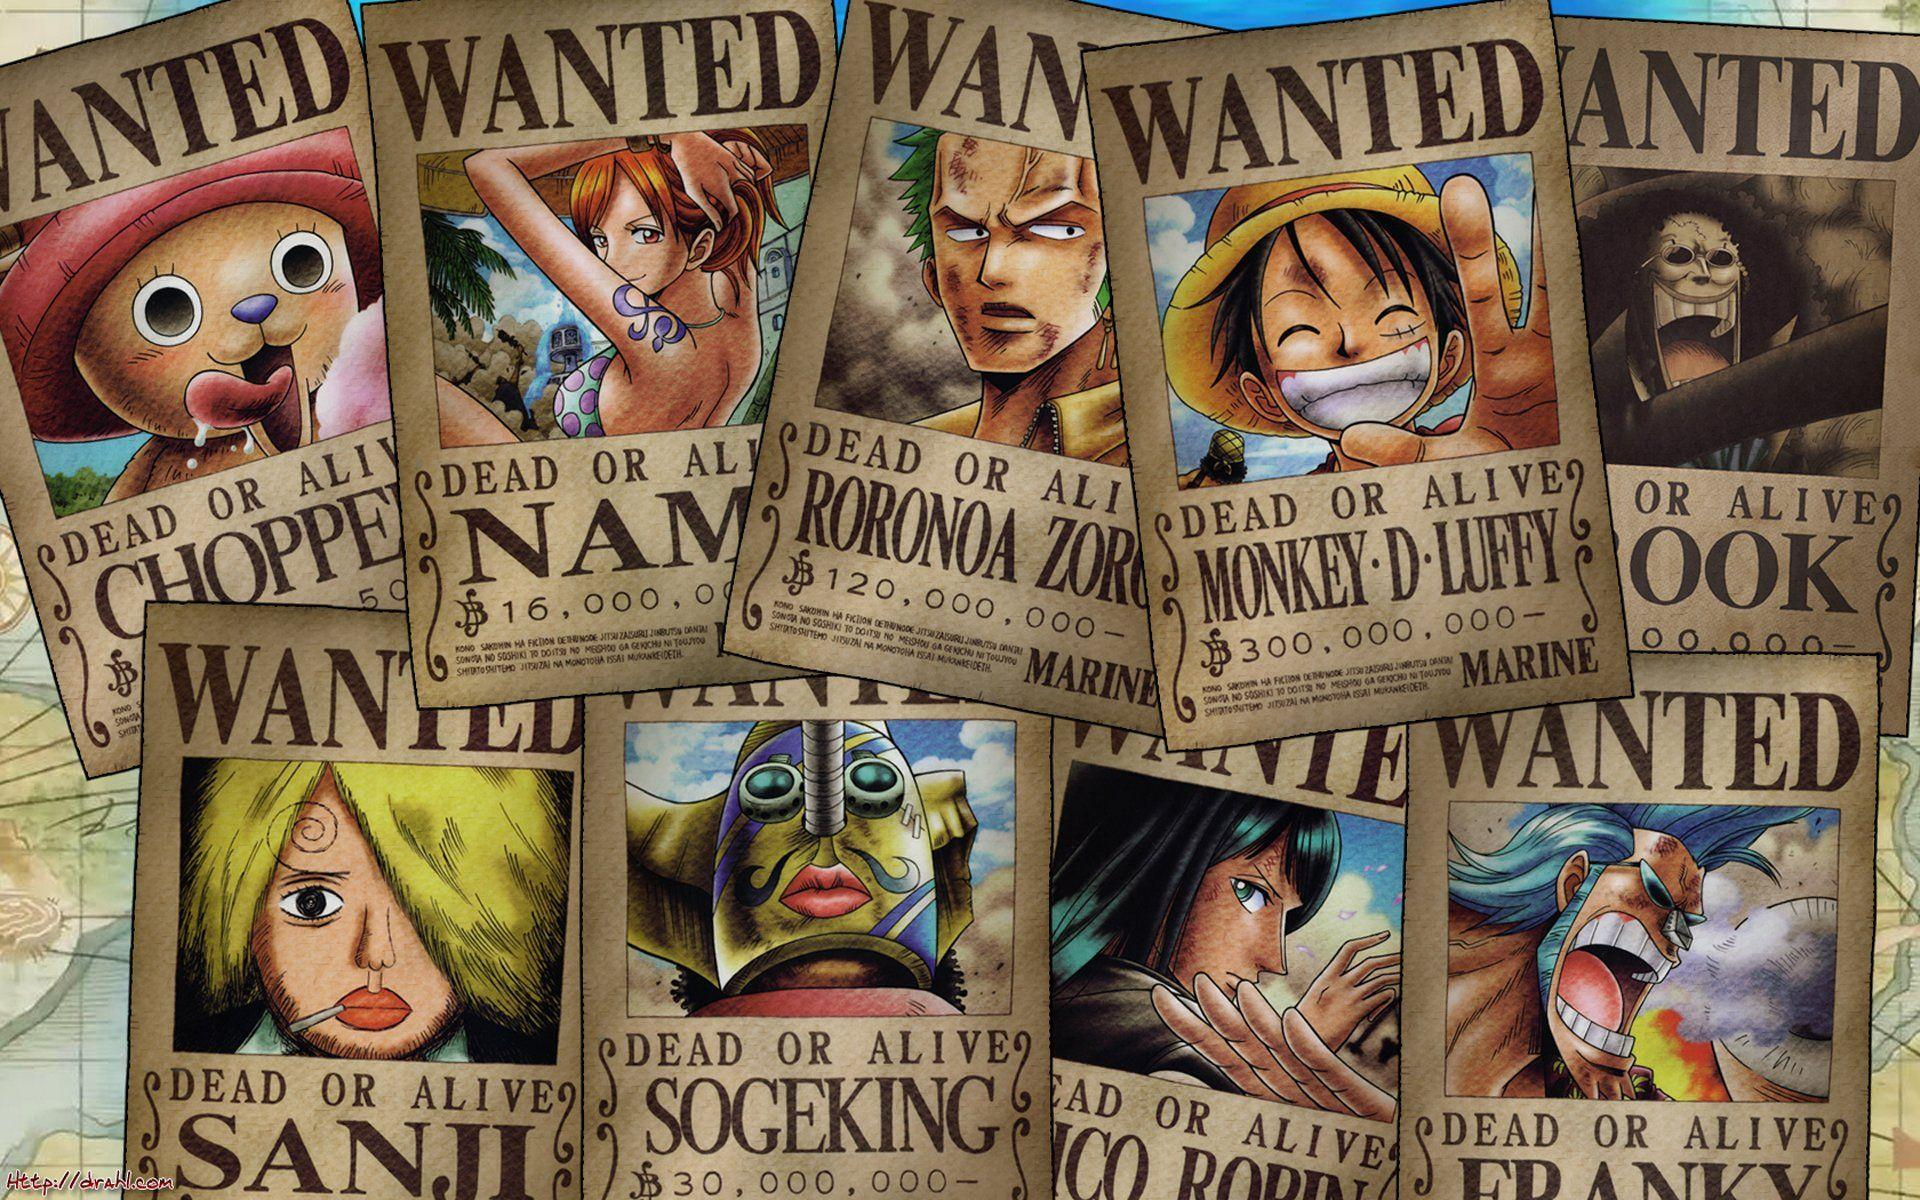 You are viewing our sanji desktop wallpapers from the one piece anime series Wallpaper Sanji One Piece